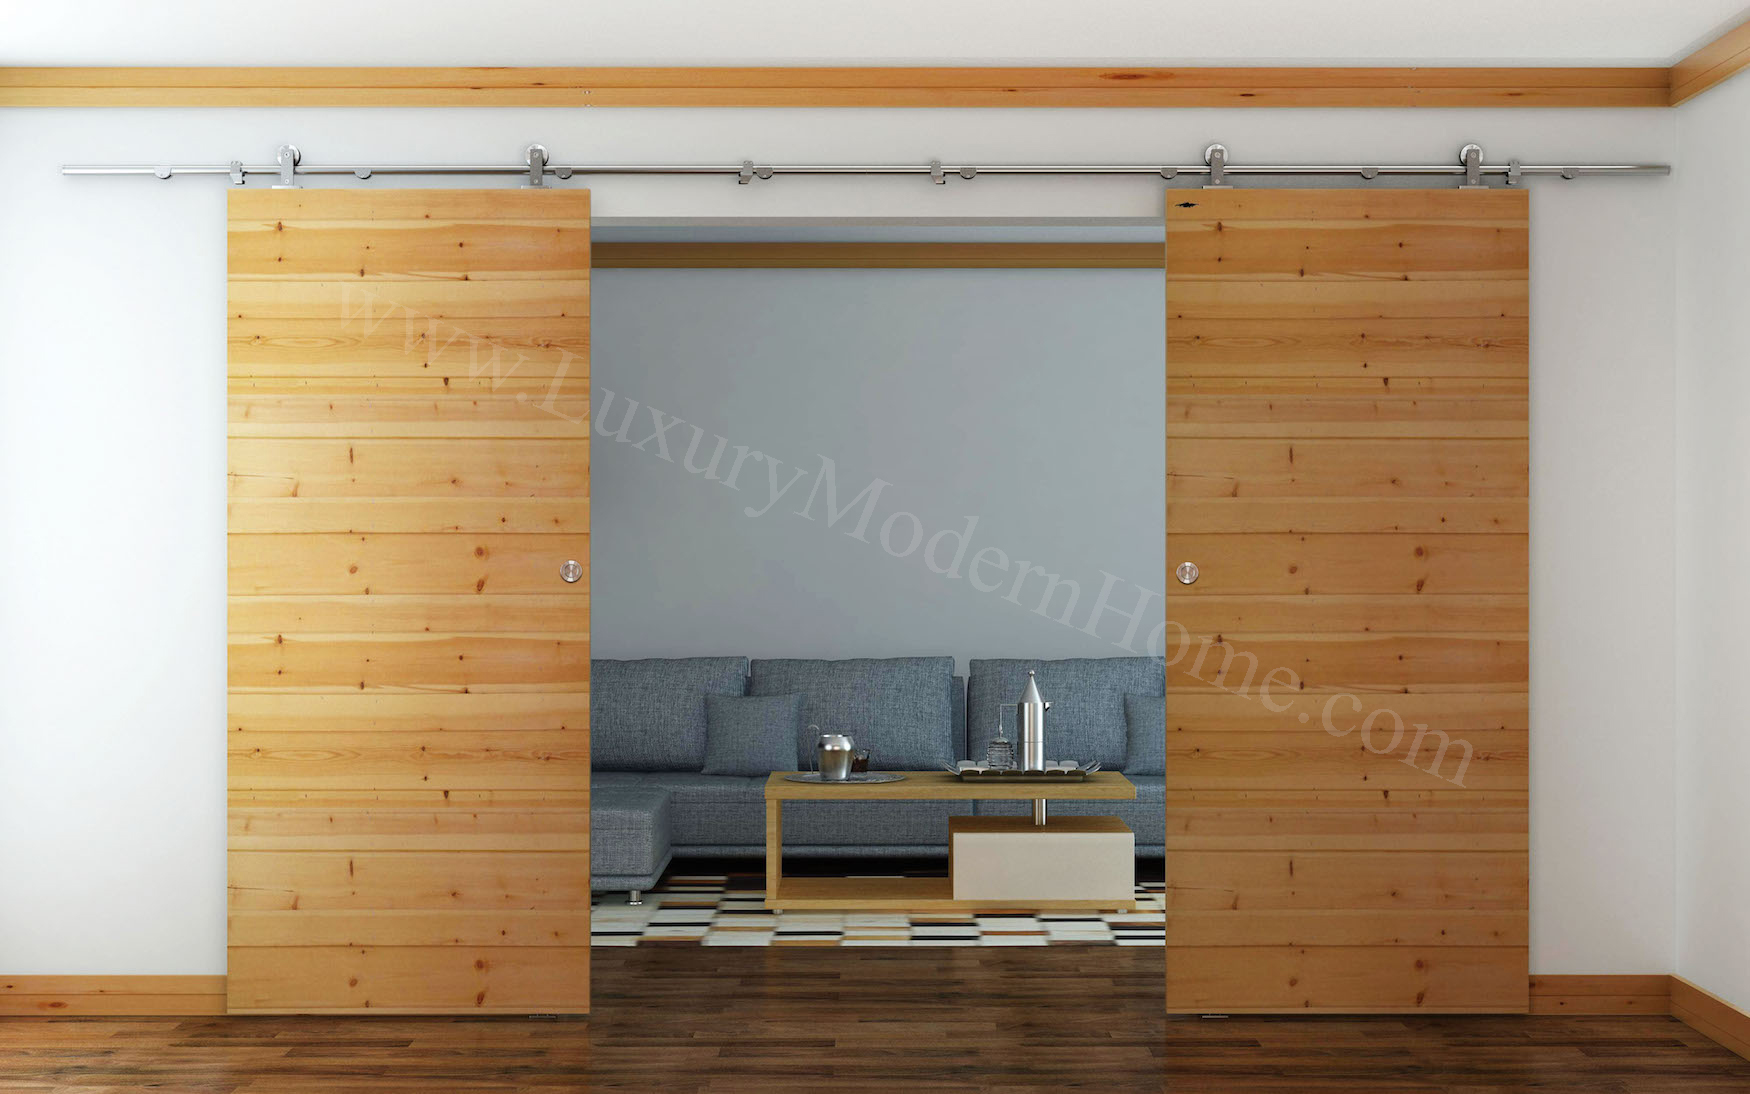 rubbed track double door barn sliding rustic country oil max orb opening barns antique hardware bronze austin